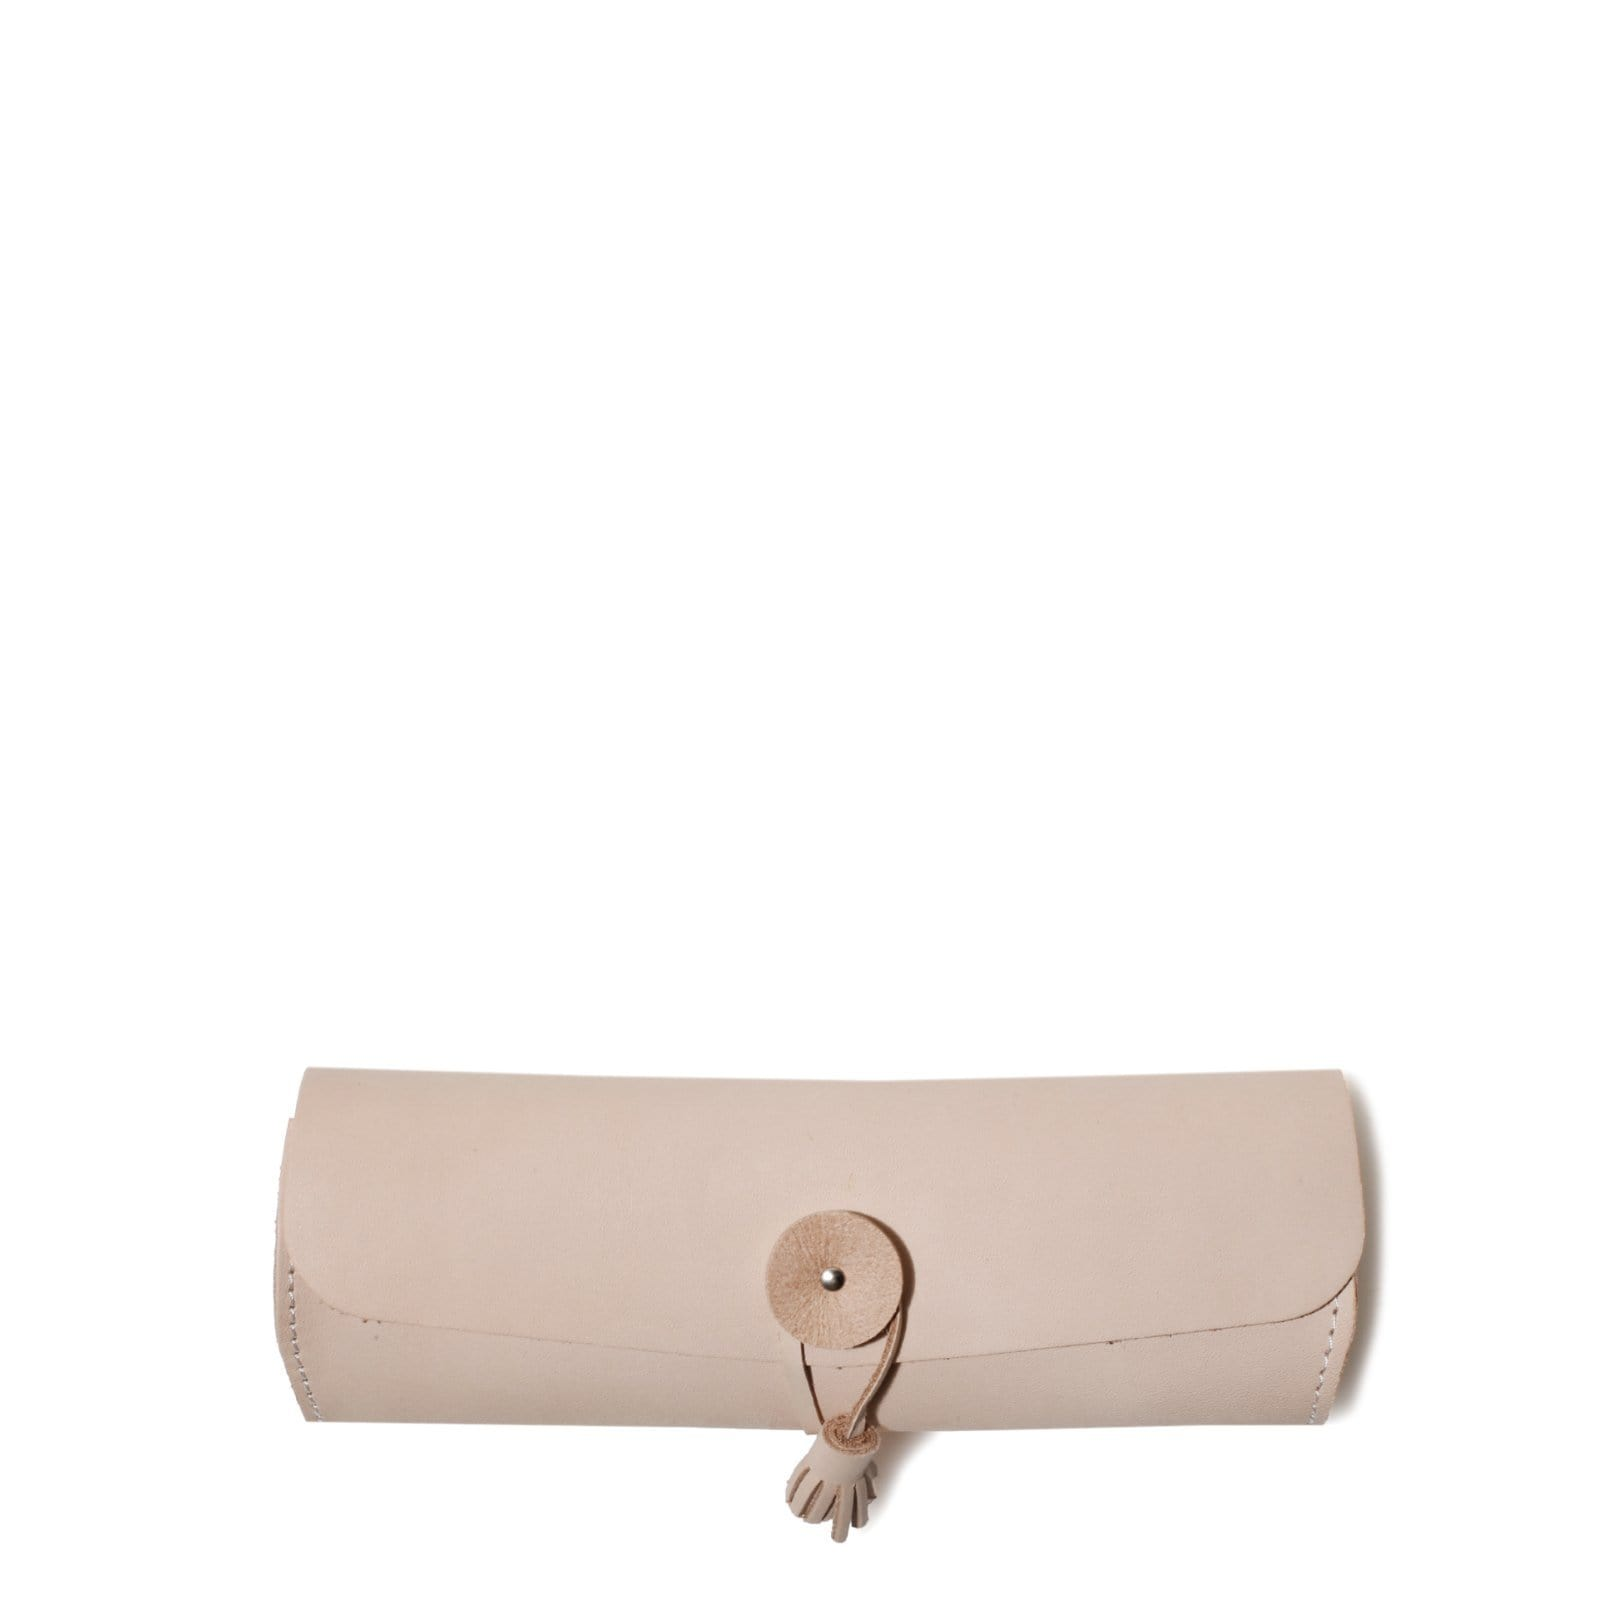 Hender Scheme Bags & Accessories NATURAL / O/S PEN CASE